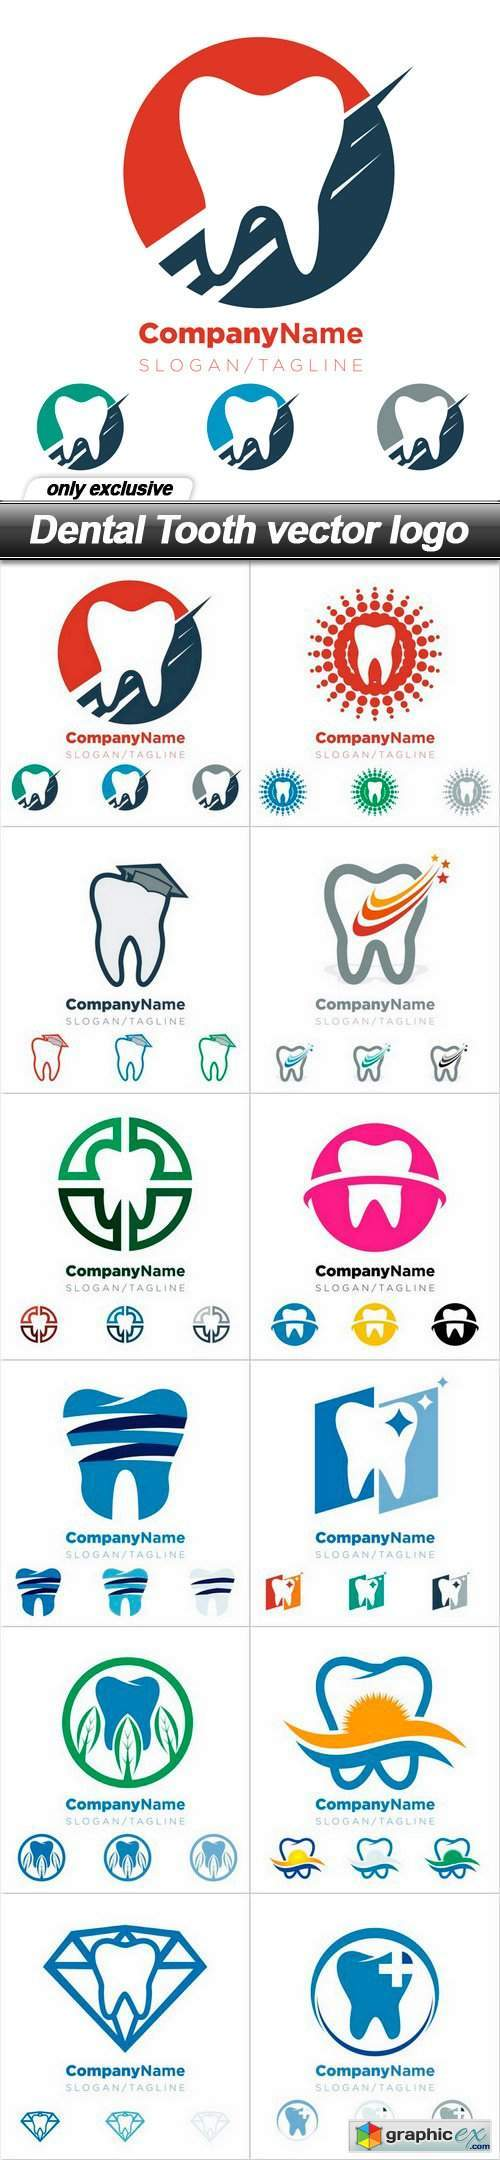 Dental Tooth vector logo - 12 EPS